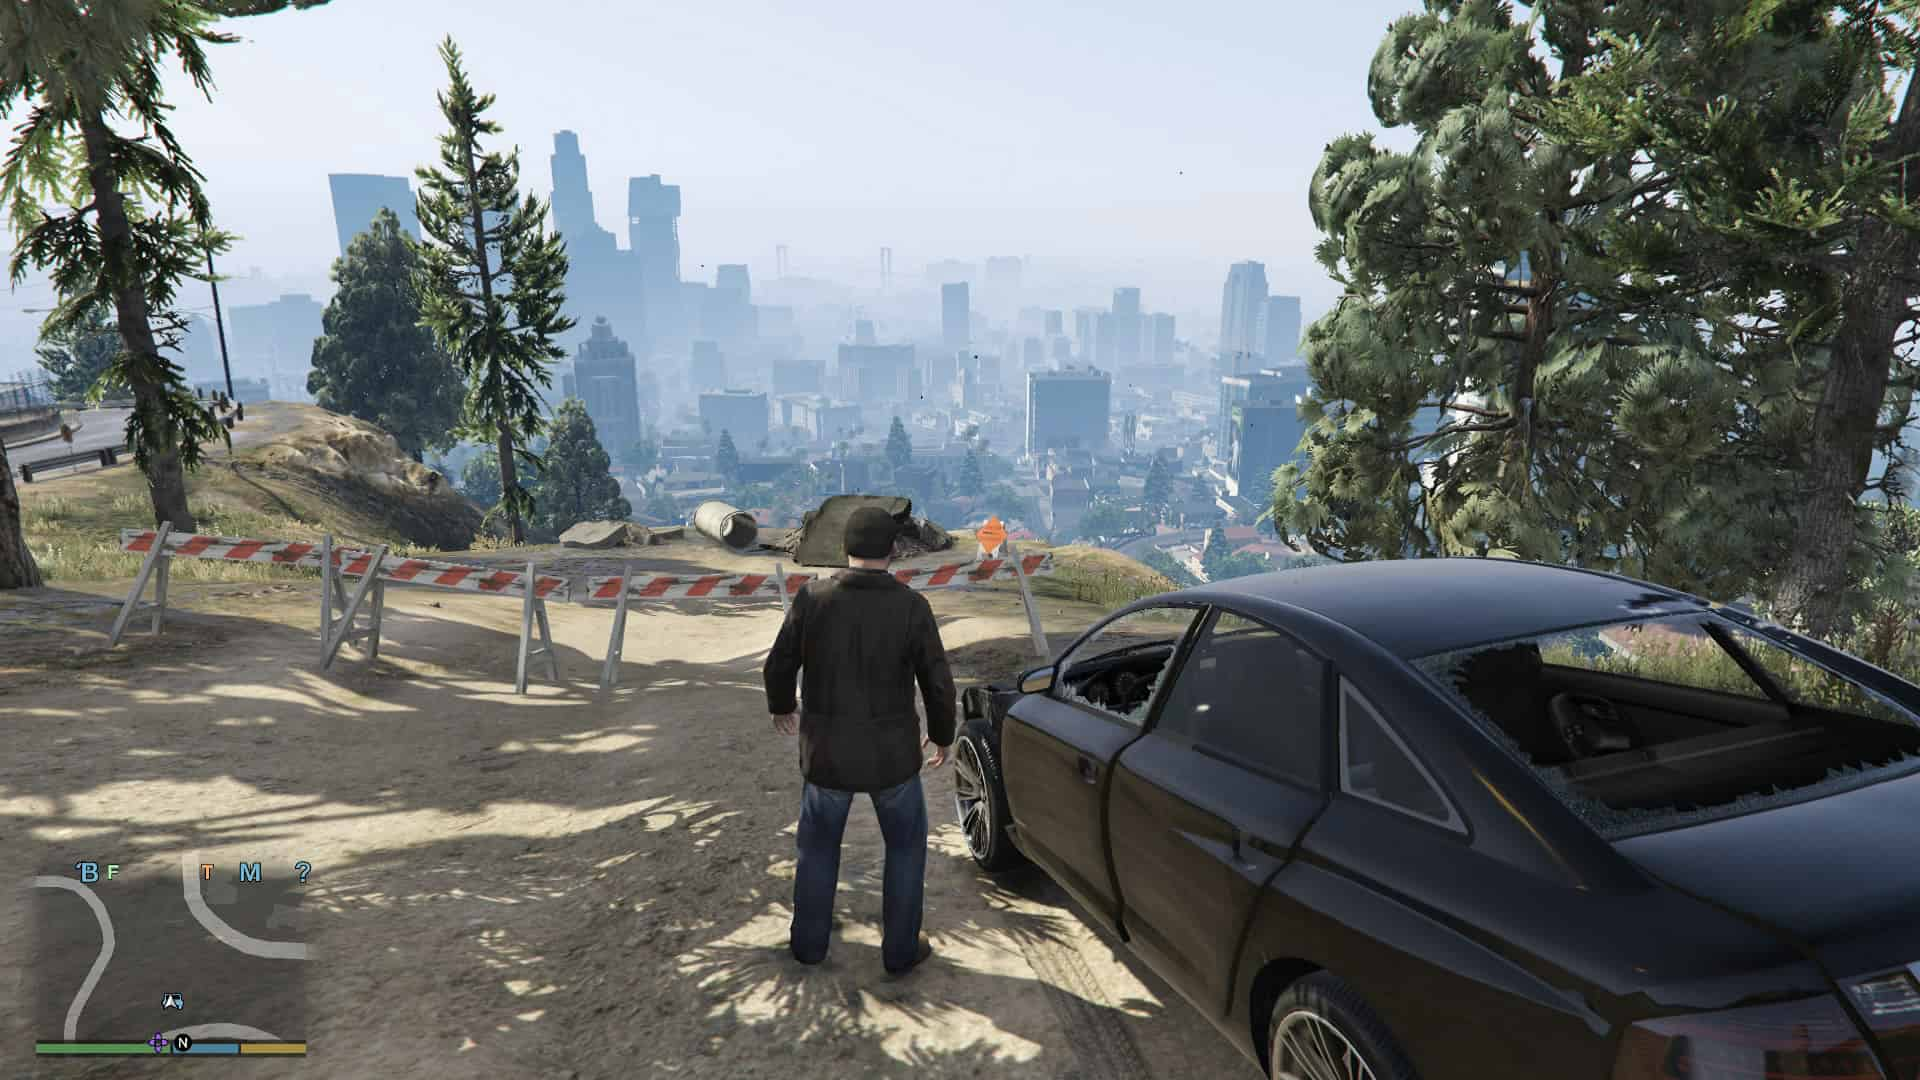 GTA 6: Rumors and Discussions - GTA 6 Mod   Grand Theft Auto